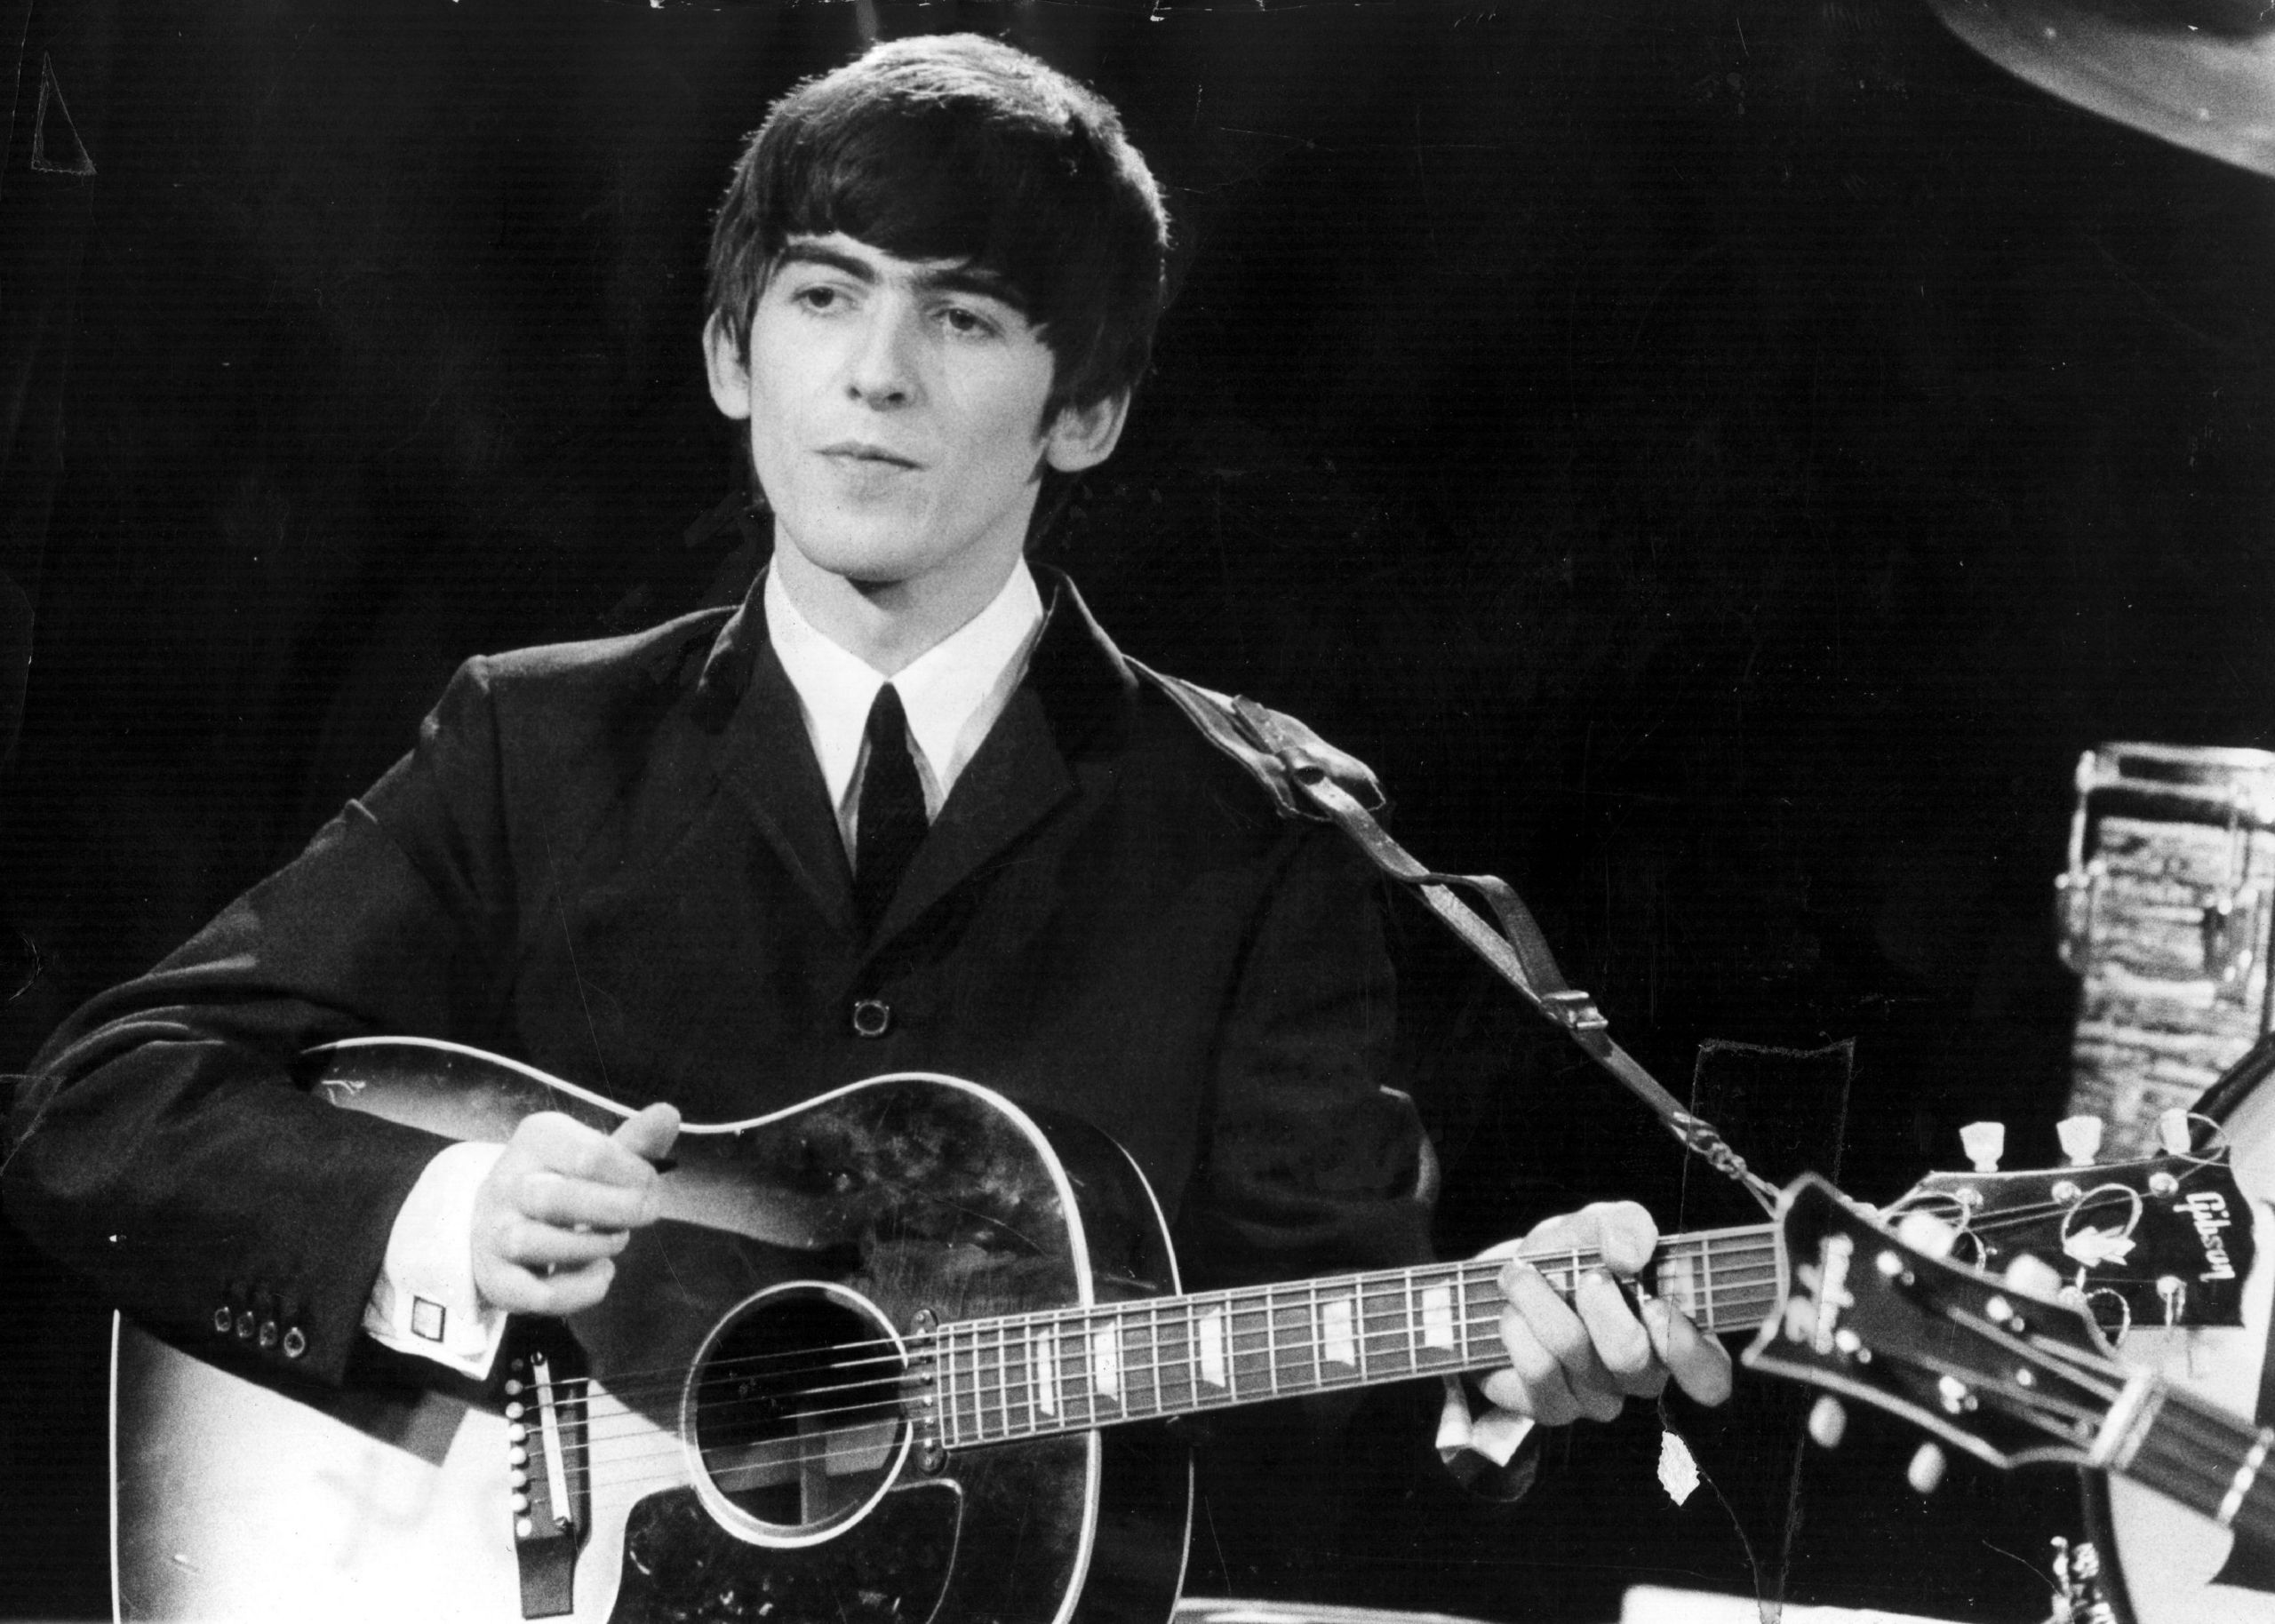 60s Music Images George Harrison HD Wallpaper And Background Photos